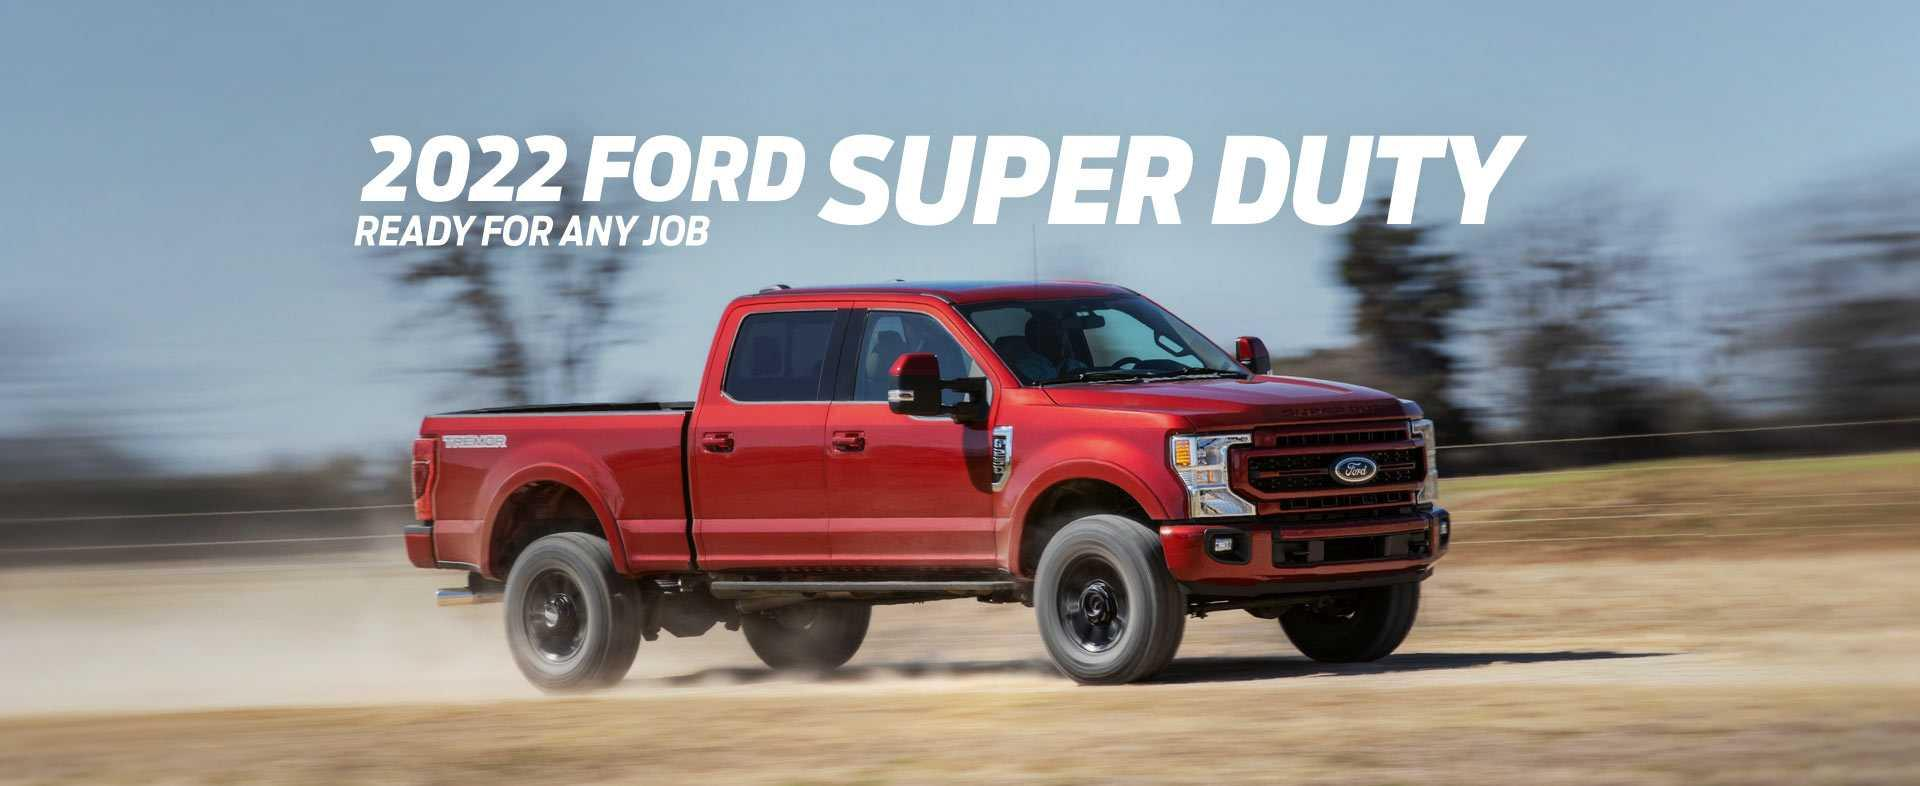 2022 Ford Super Duty